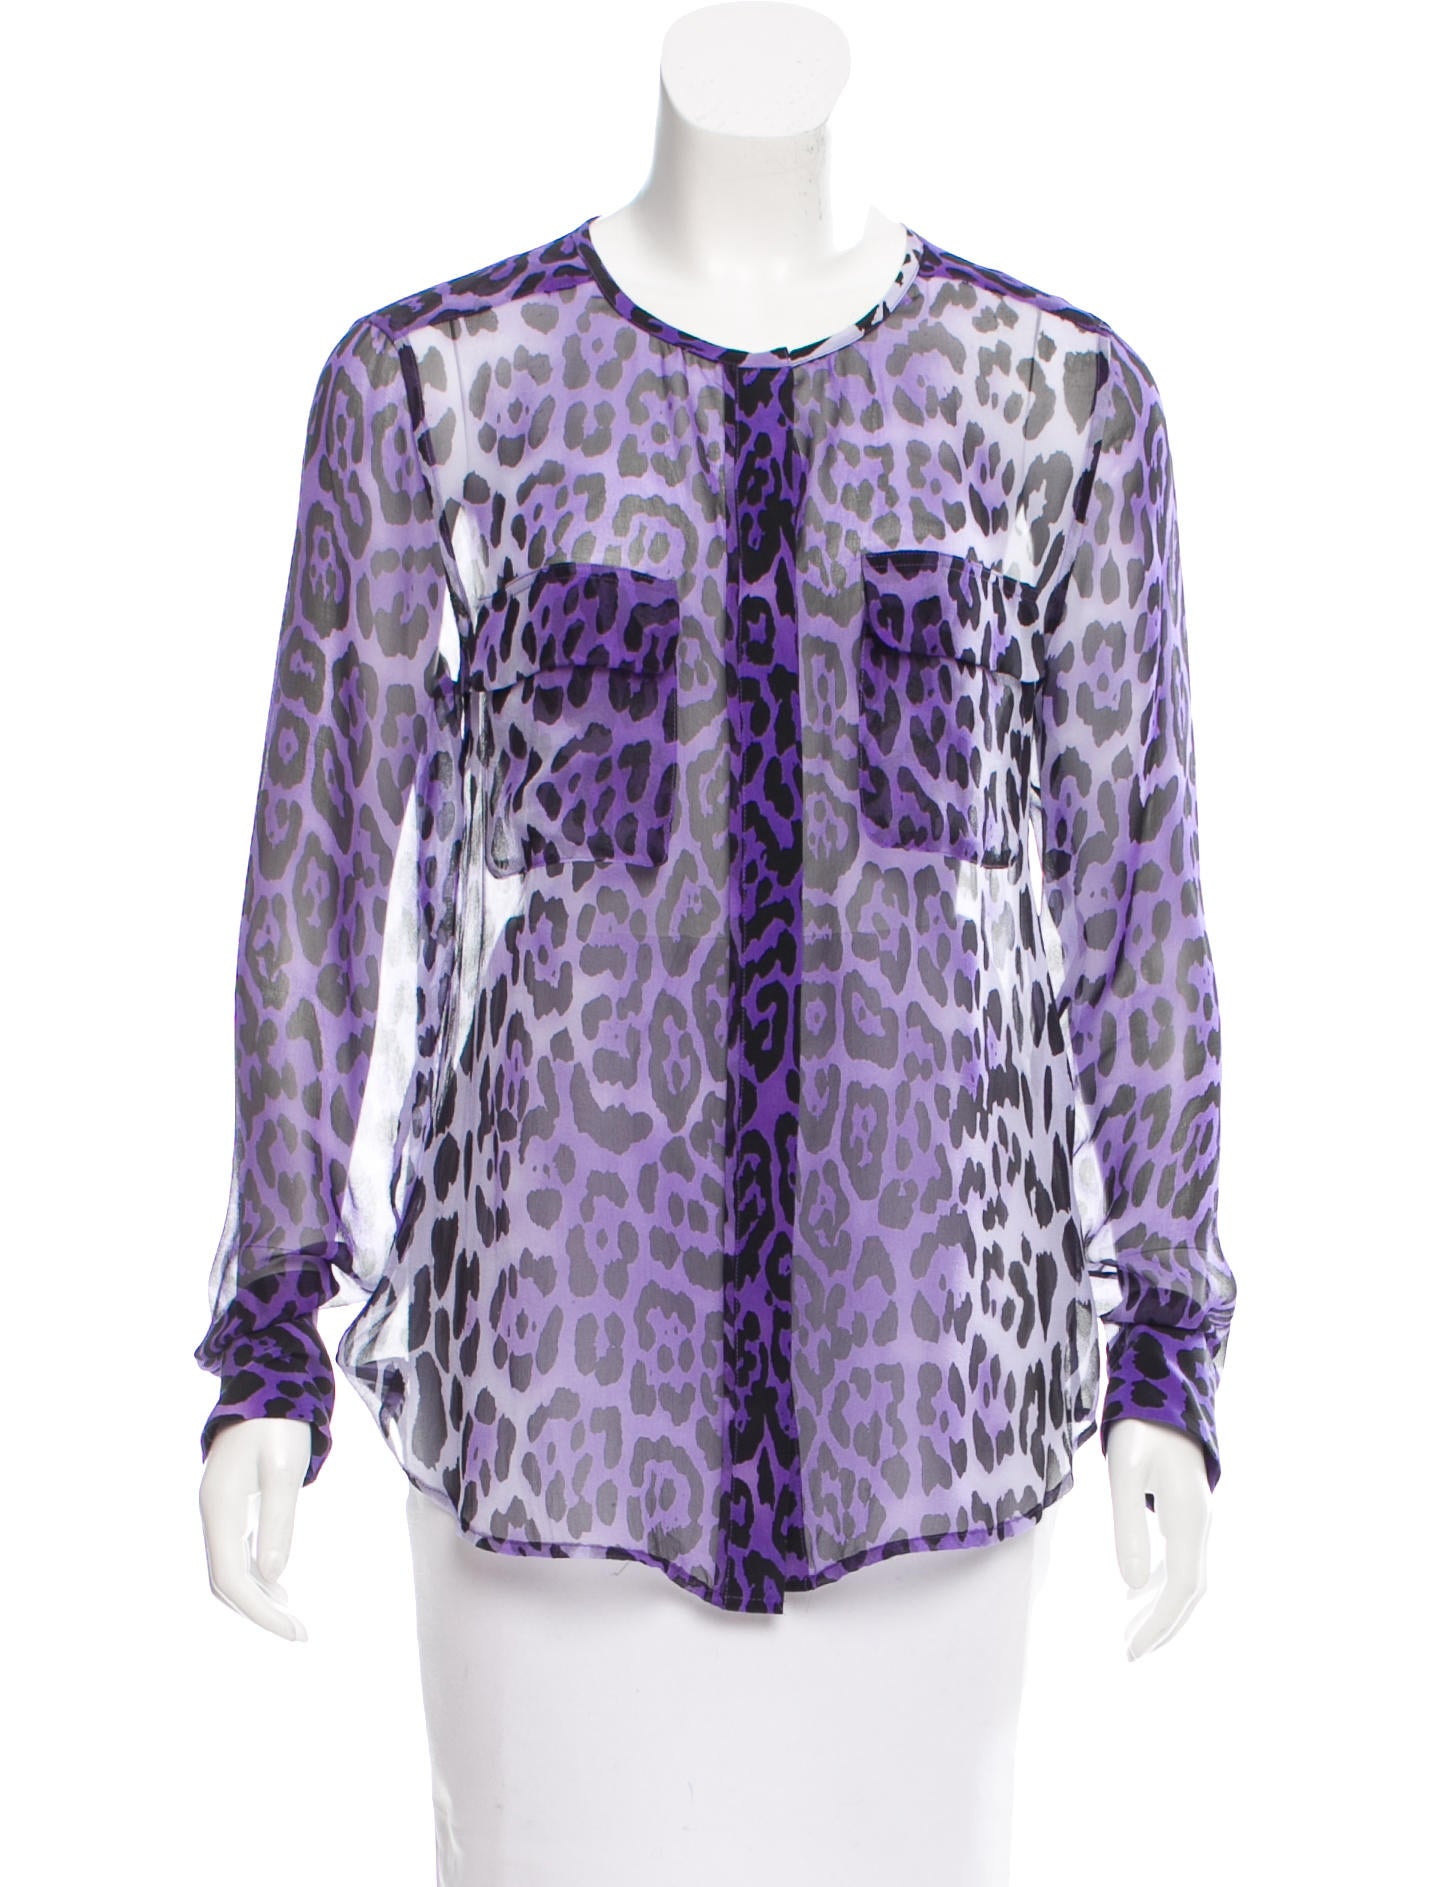 Equipment Silk Leopard Print Blouse Clothing Weq32809 The Realreal